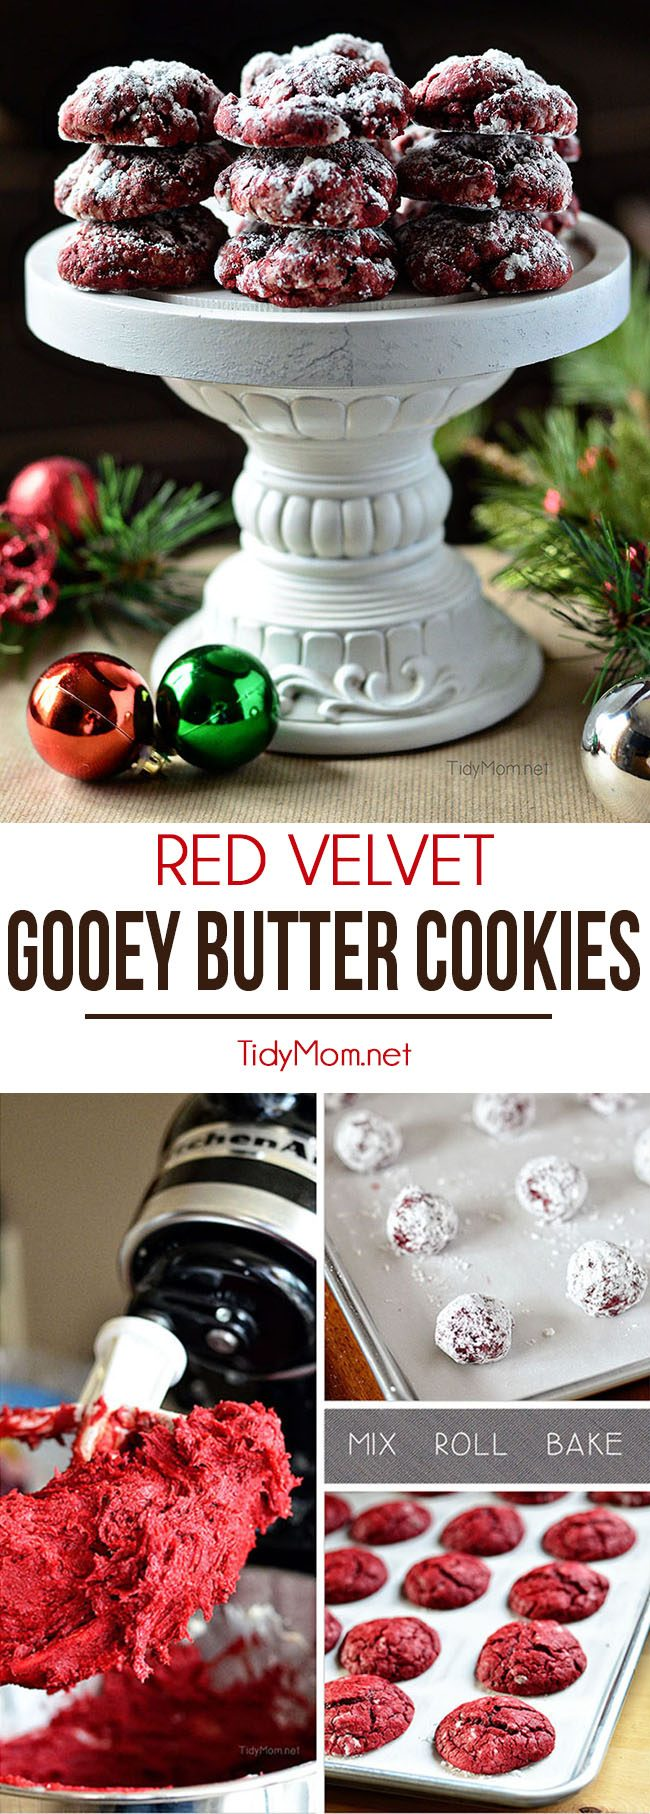 This holiday gooey butter cookie hit starts with a boxed cake mix, making them so simple you'll have no excuse not to make Red Velvet Cookies for Christmas. recipe at TidyMom.net